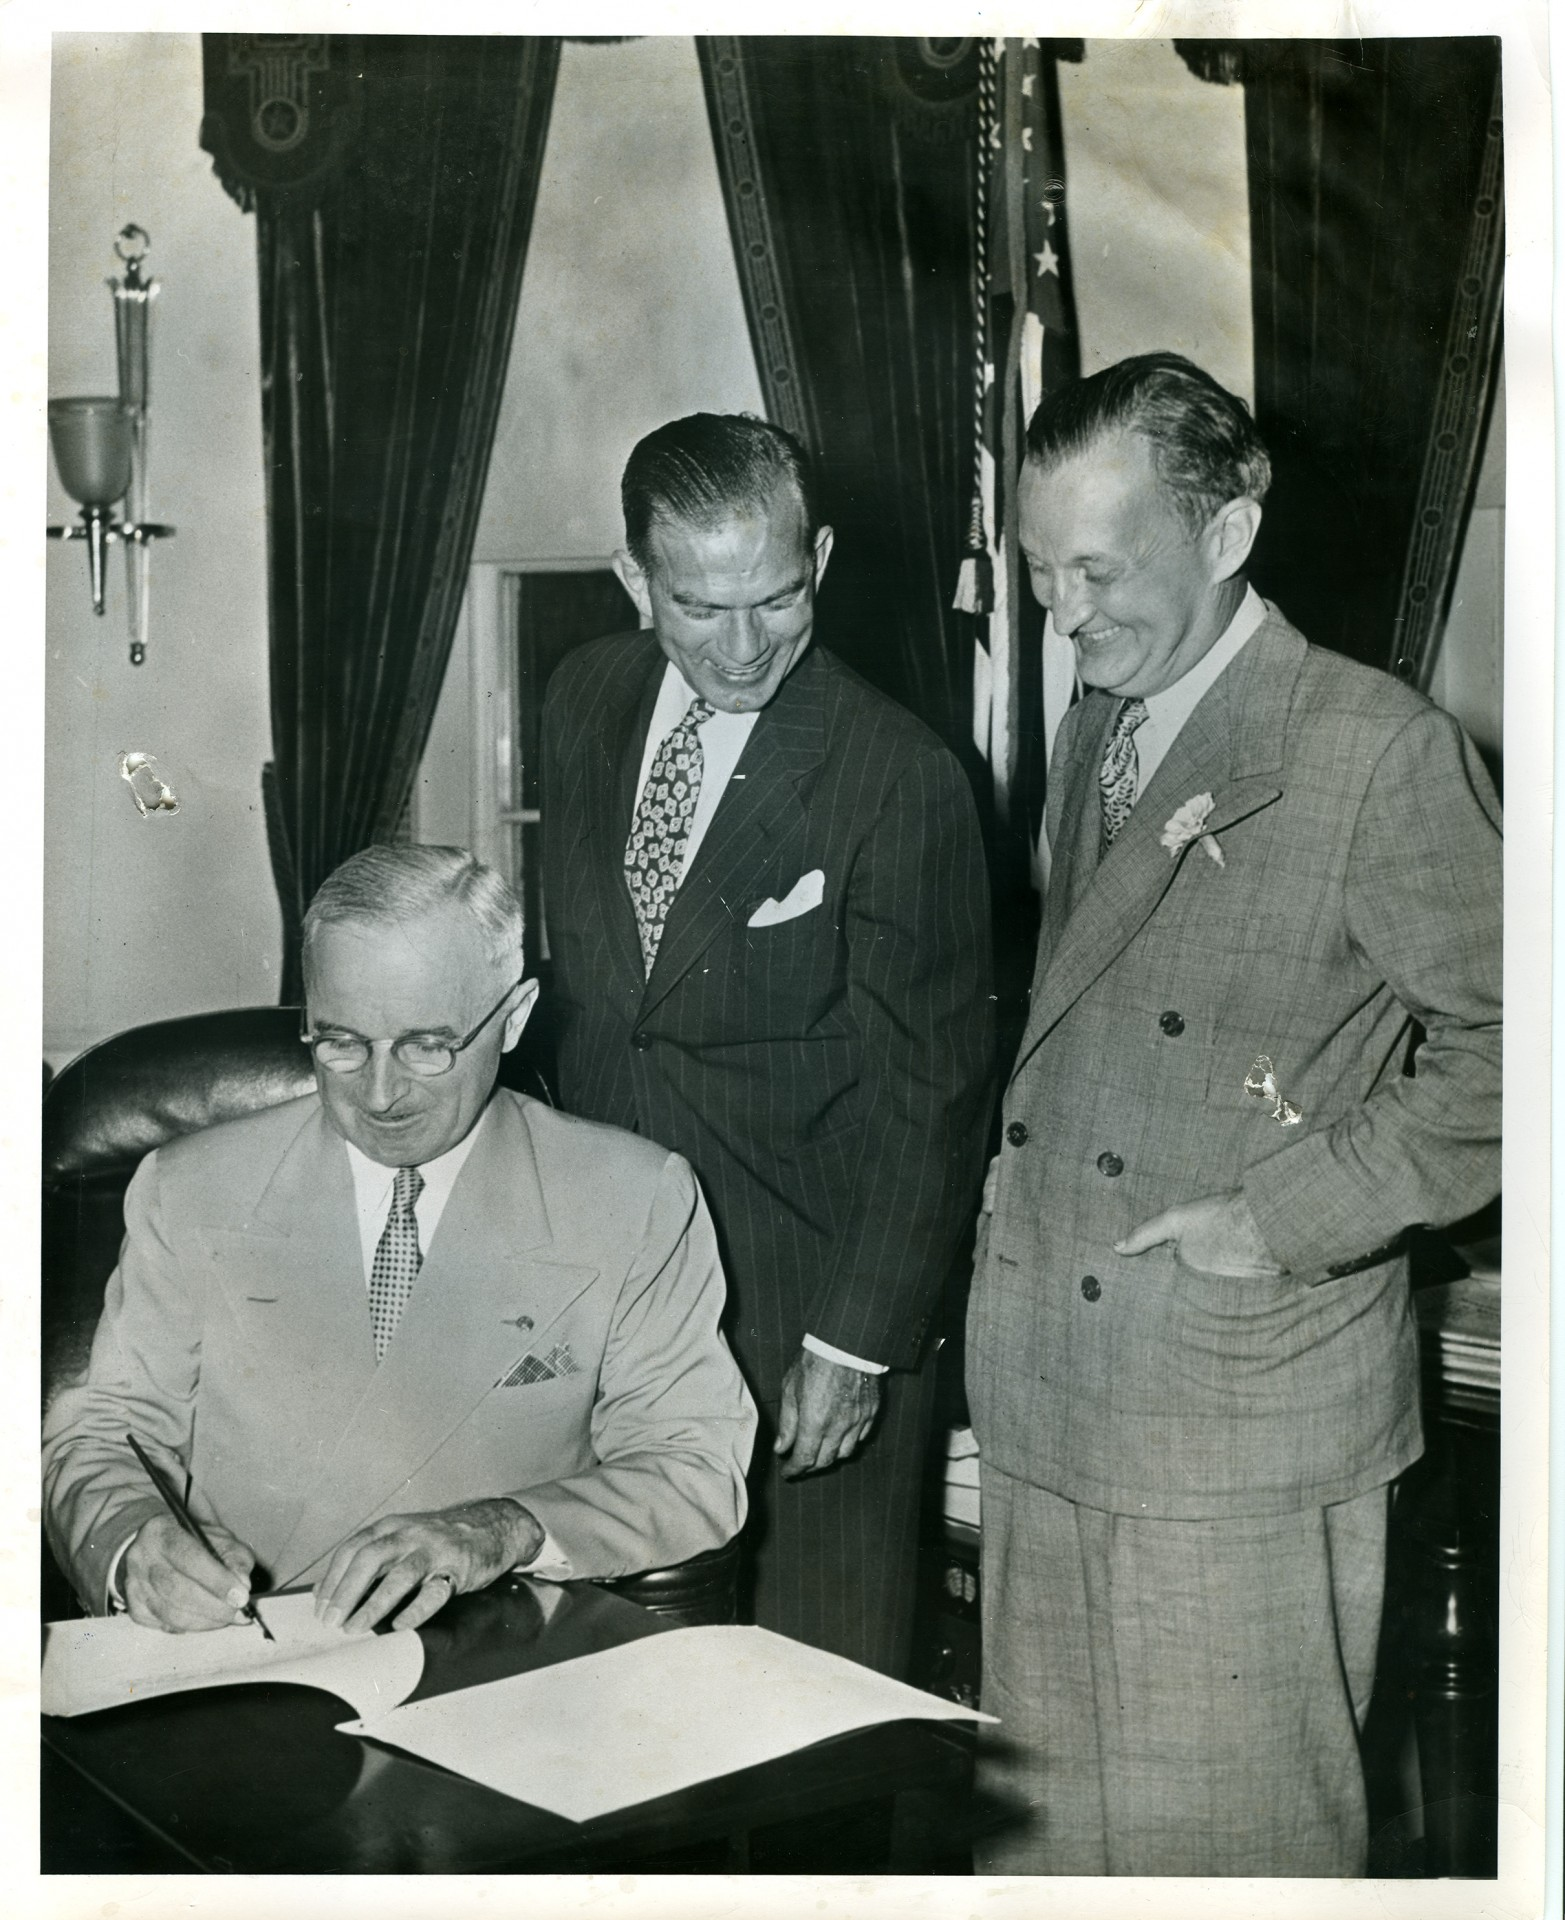 Senator Fulbright and Assistant Secretary of State William Benton look on as President Harry S. Truman signs the Fulbright Act into law, August 1, 1946. From the J. William Fulbright Papers, S86 Box 9 Folder 1, Special Collections, University of Arkansas Libraries.